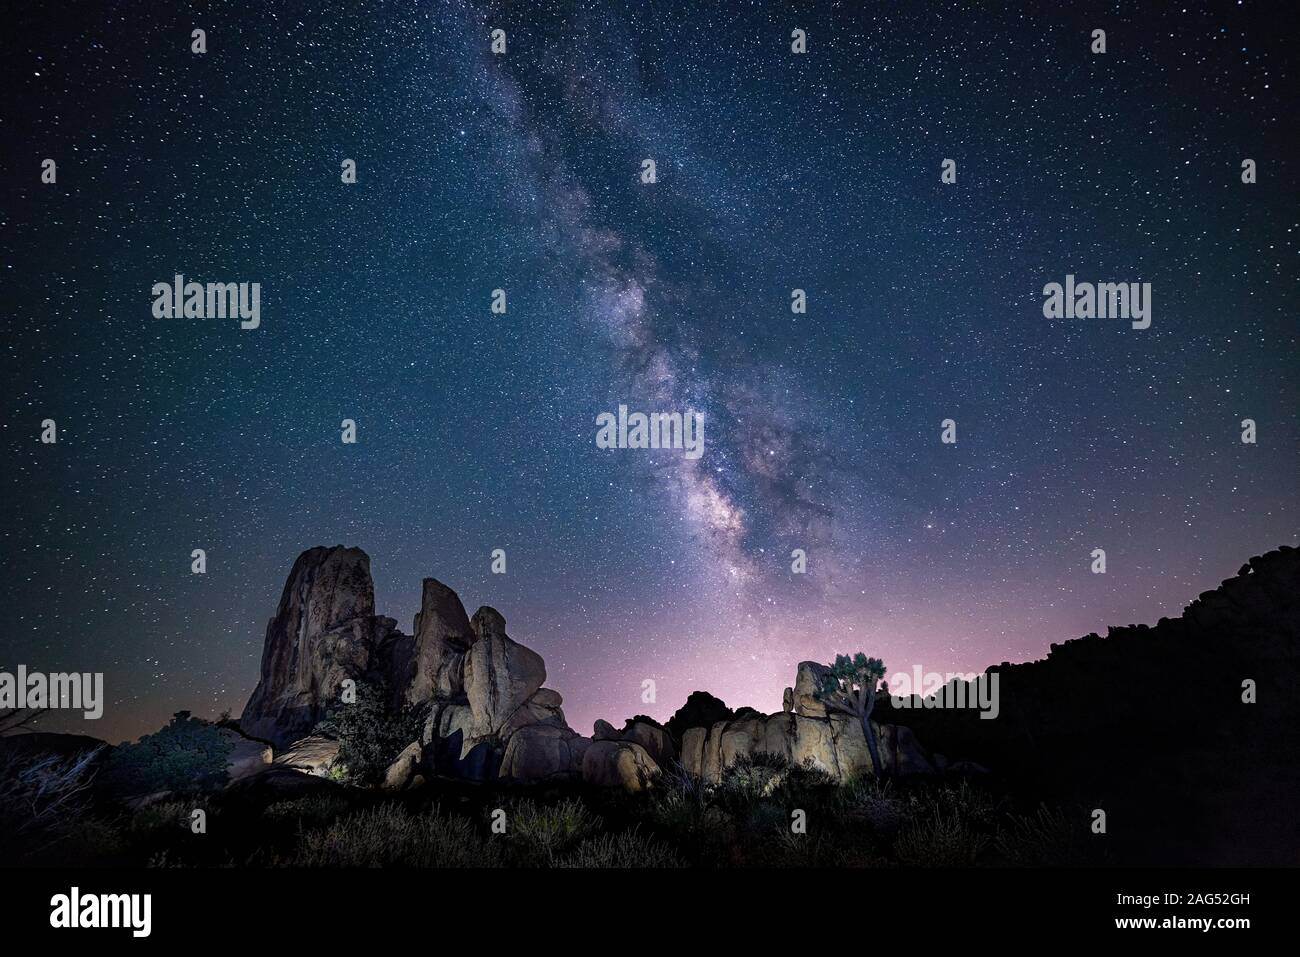 A Beautiful Shot Of Silhouettes Of Rocks Under The Purple Sky Full